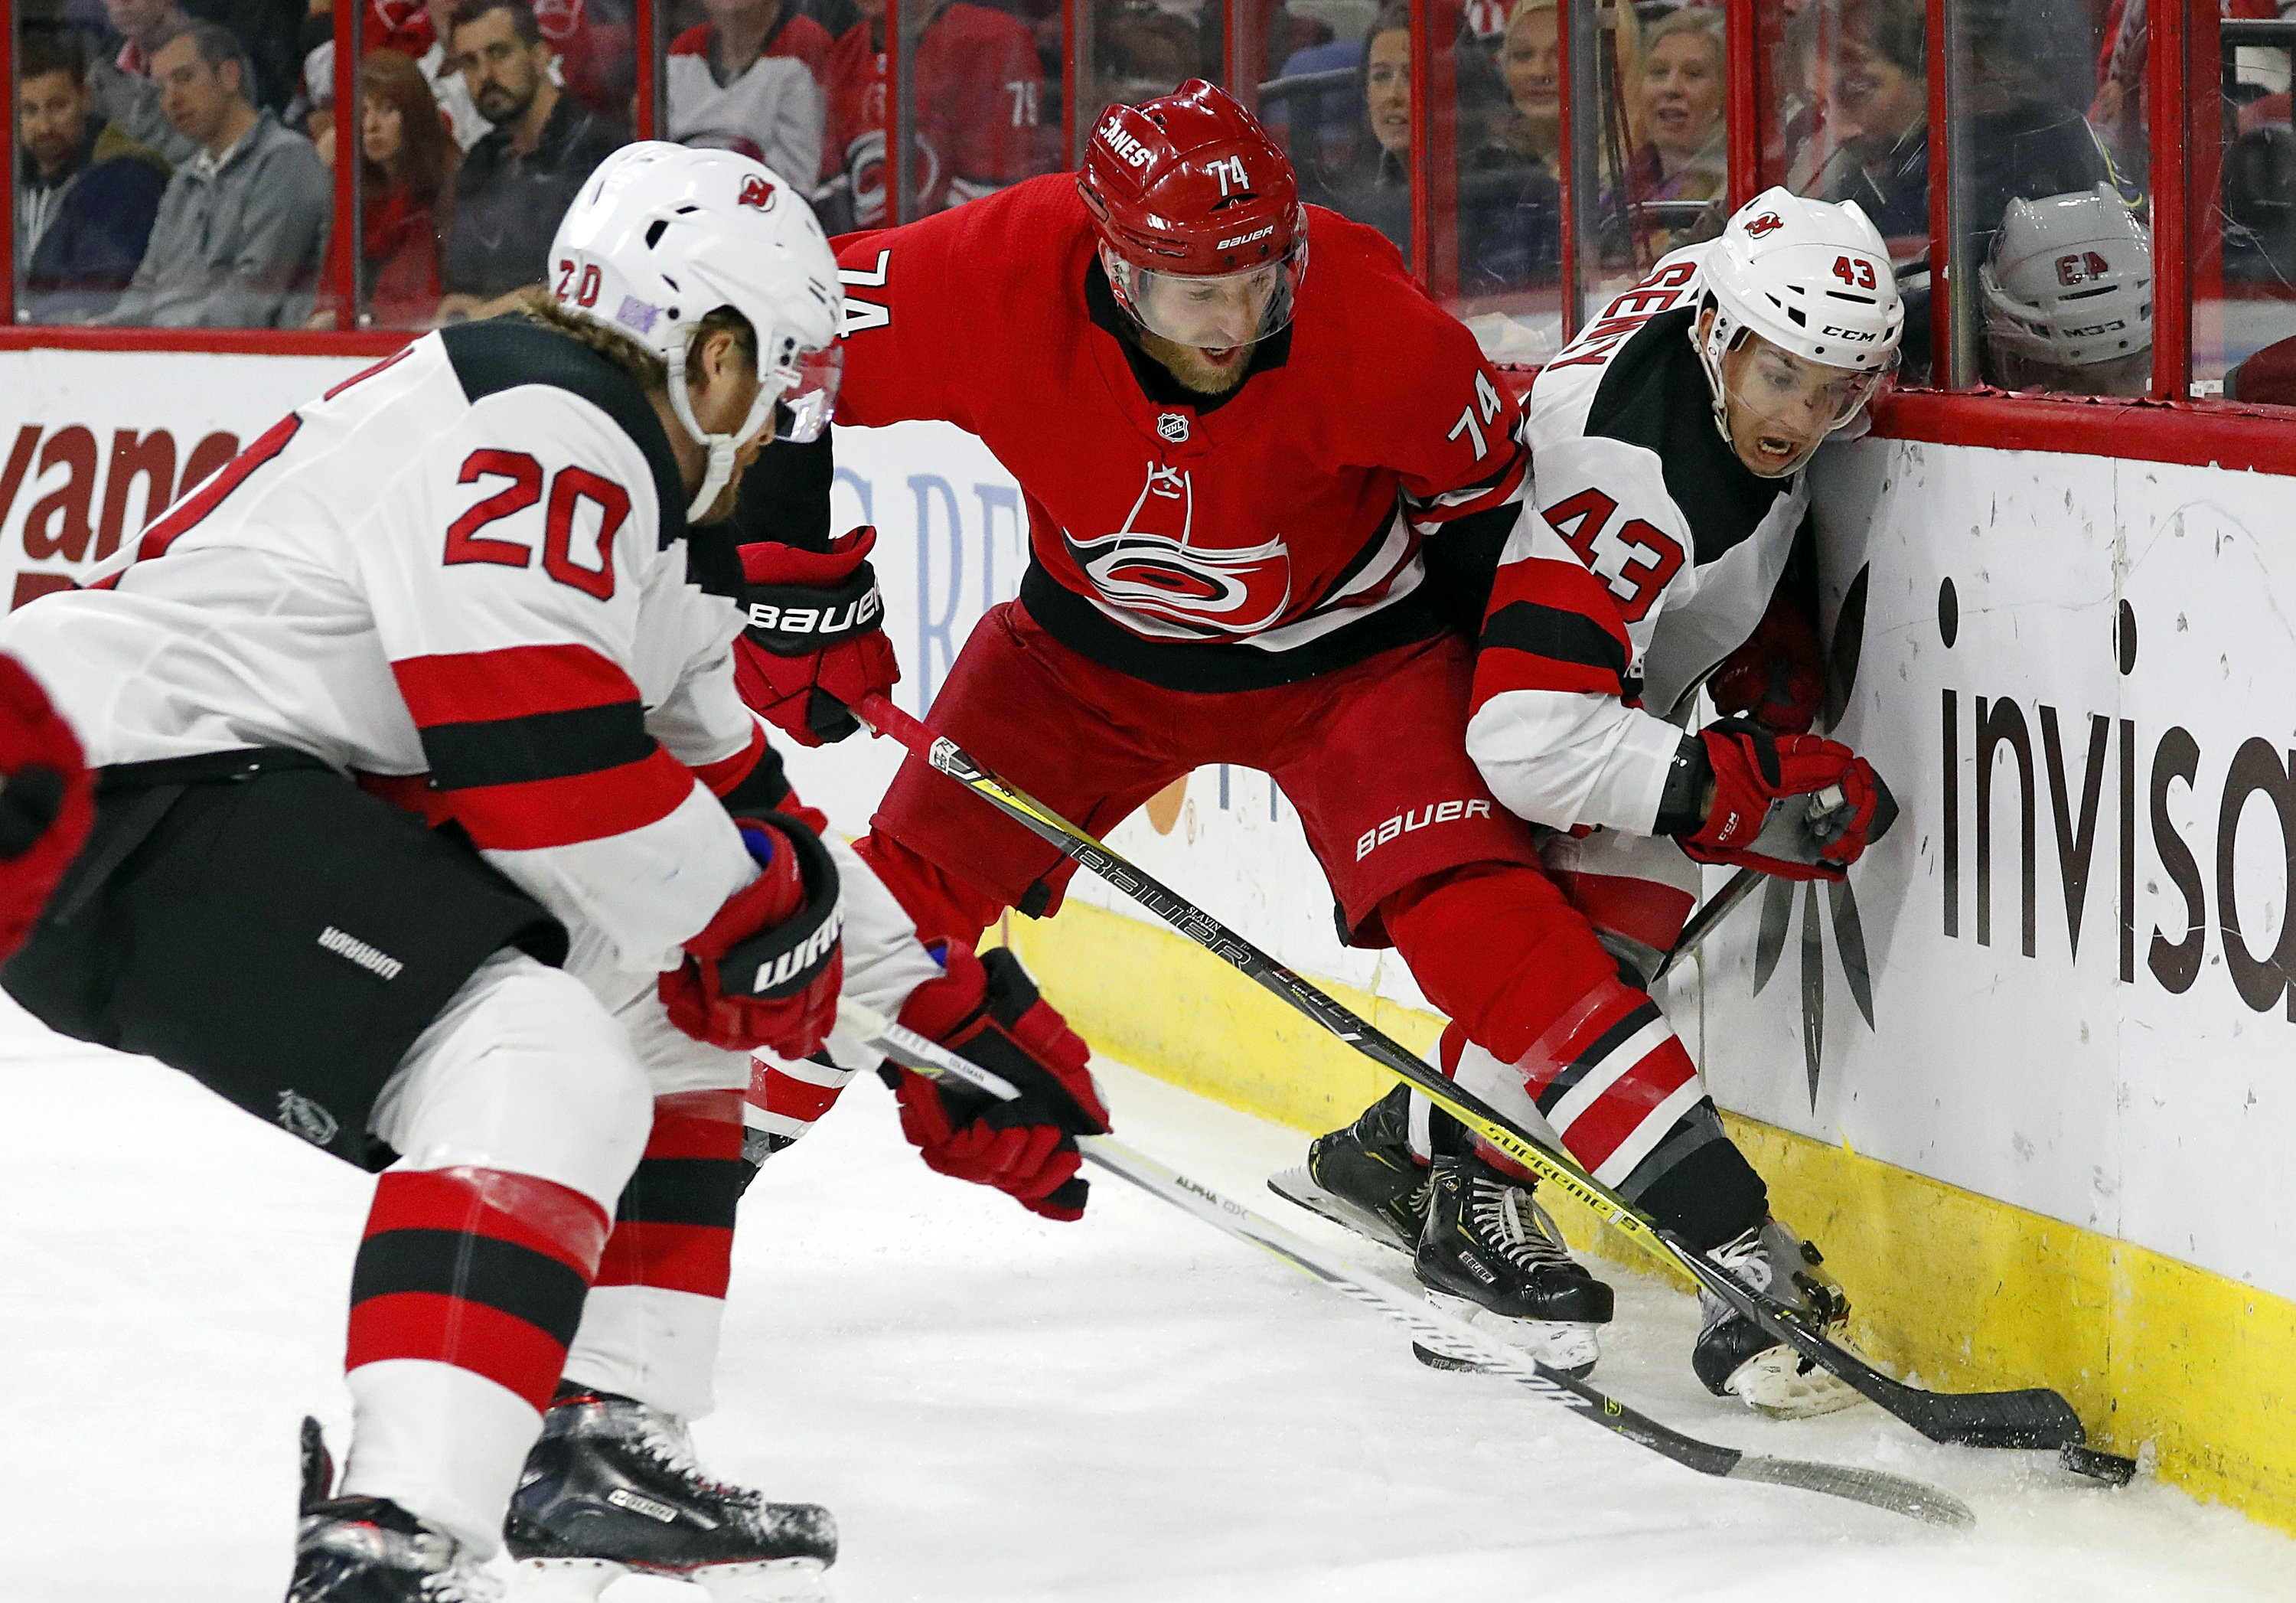 Hurricanes score twice in opening 30 seconds, top Devils 2-1